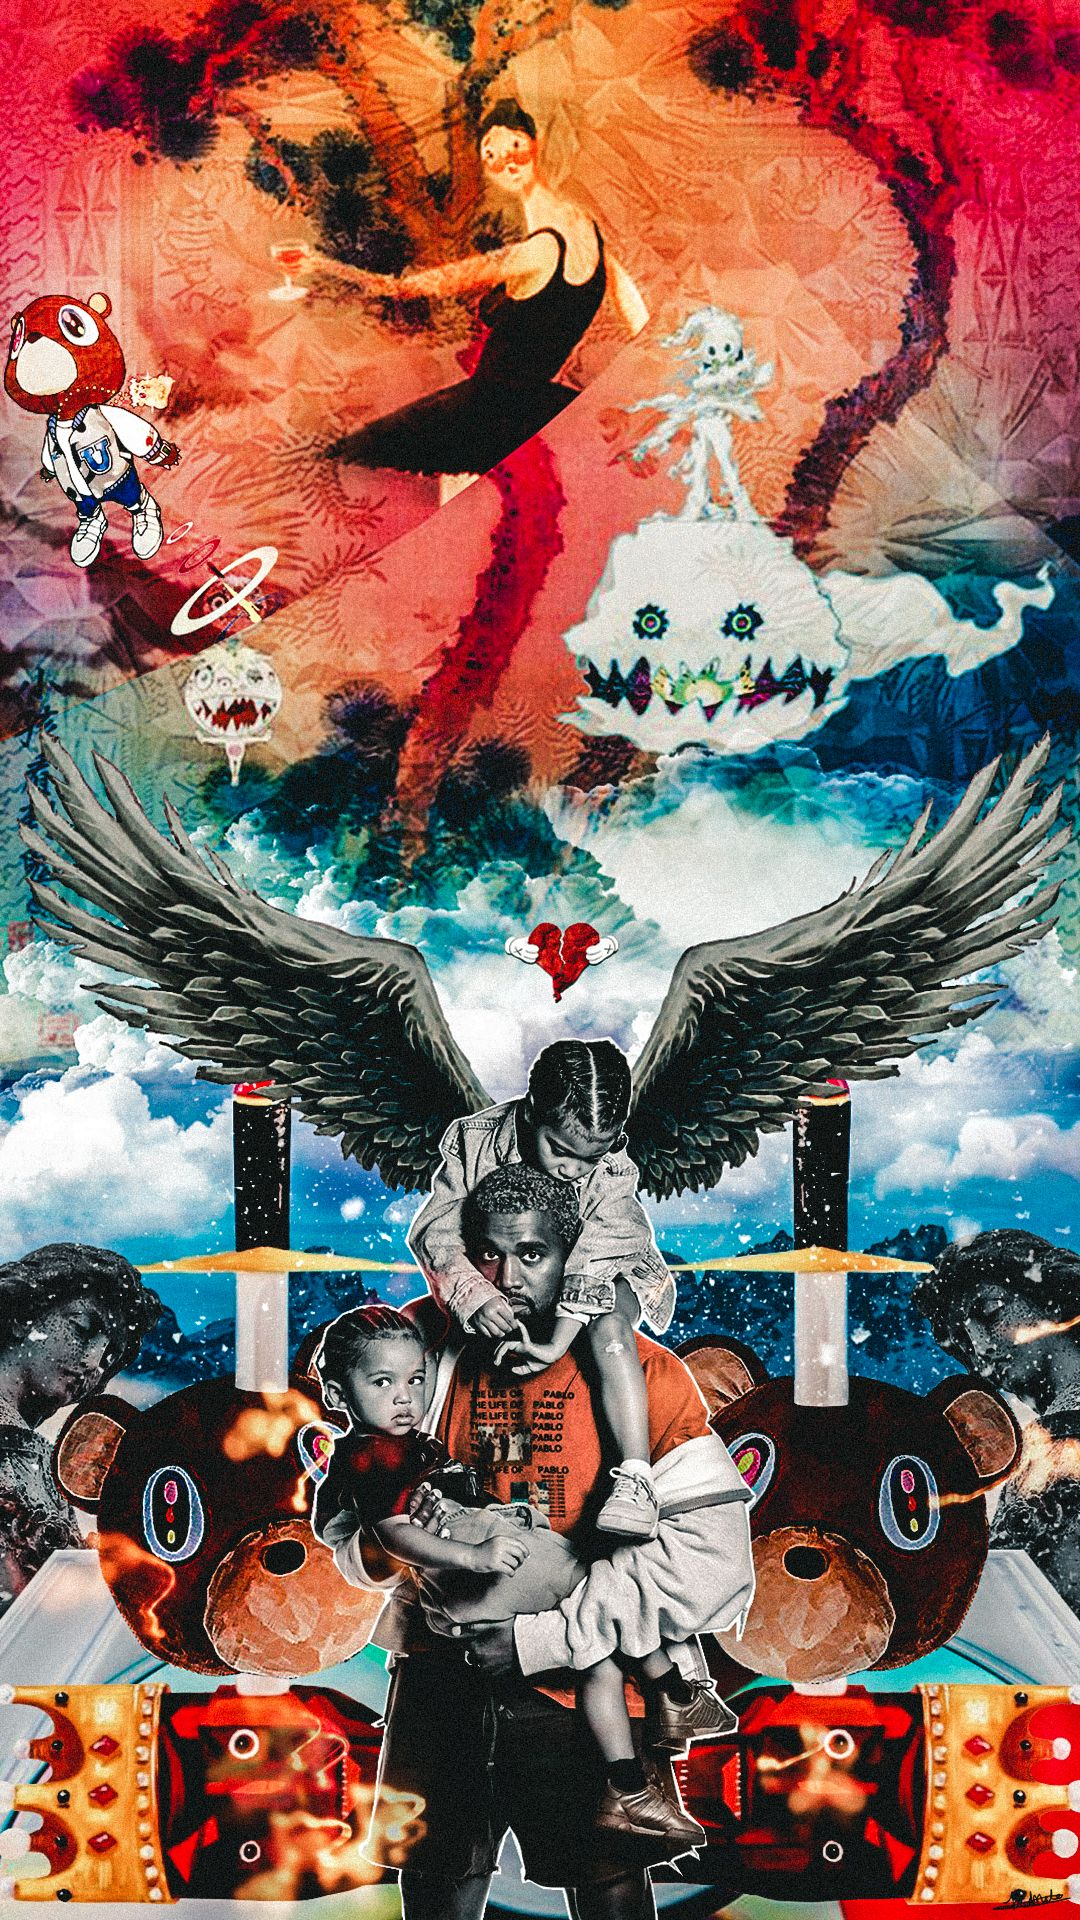 Kanye West Album Mesh Up Wallpaper Kanye West Wallpaper Yeezus Wallpaper Rap Wallpaper